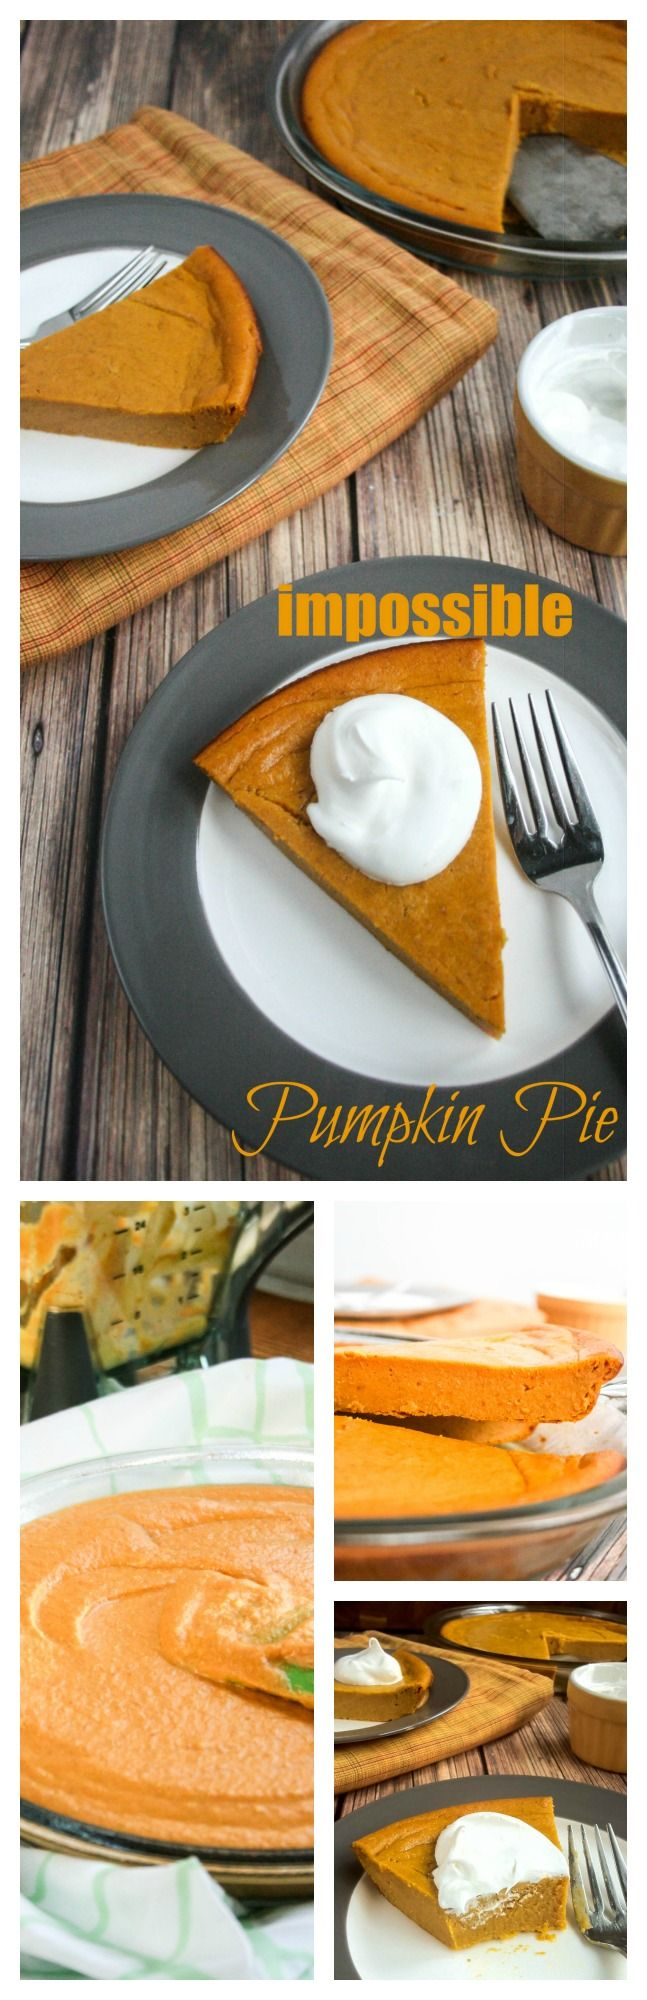 Impossible Pumpkin Pie. Hate making pie pastry? This pie is for you. Just throw all the ingredients in a blender, pour it into a pie plate and bake. It magically makes its own crust! Impossibly easy!